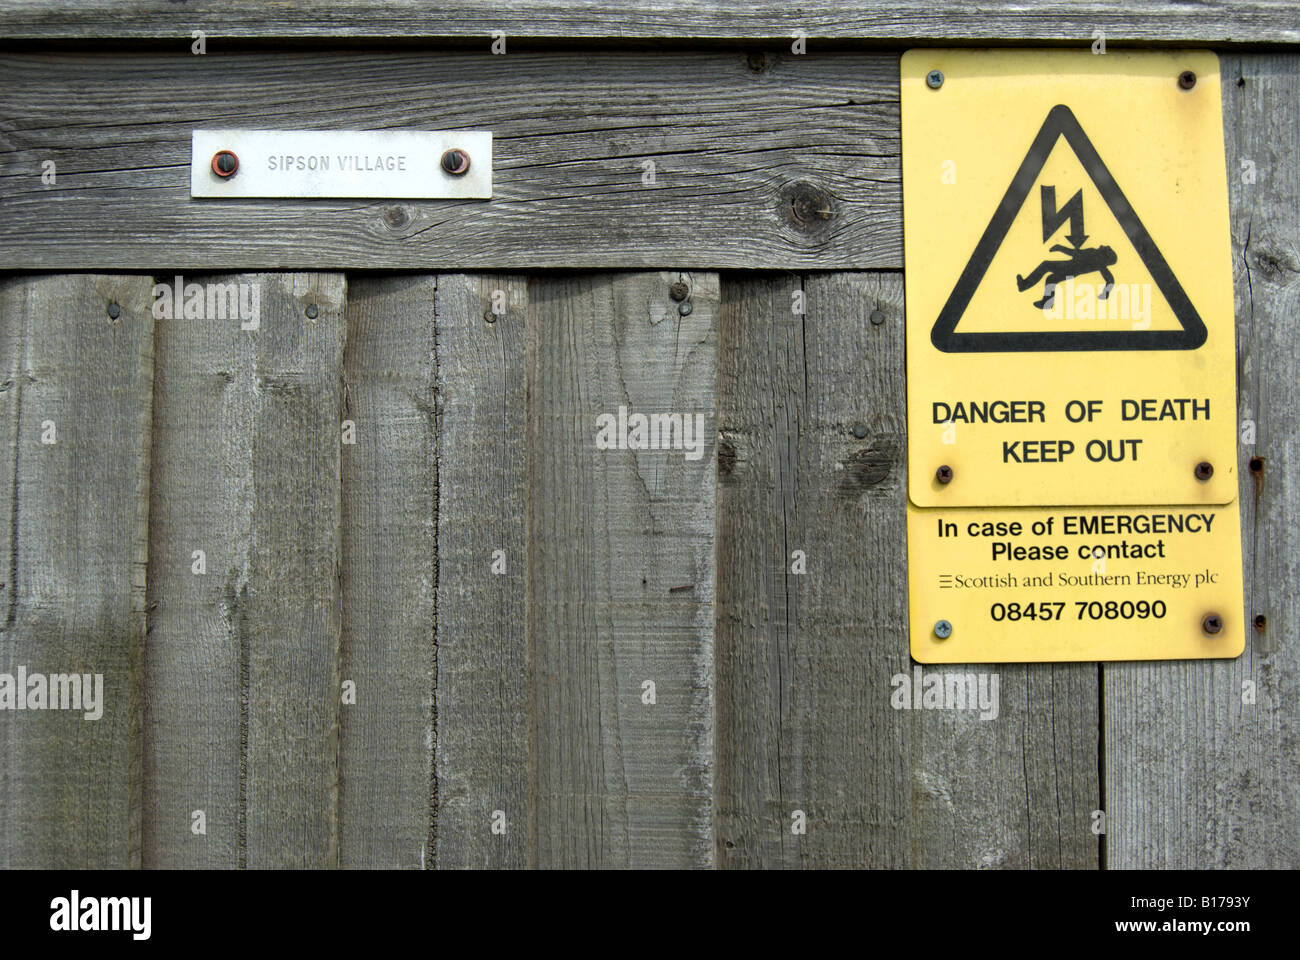 Danger Of Death Keep Out Sign Stockfotos & Danger Of Death Keep Out ...